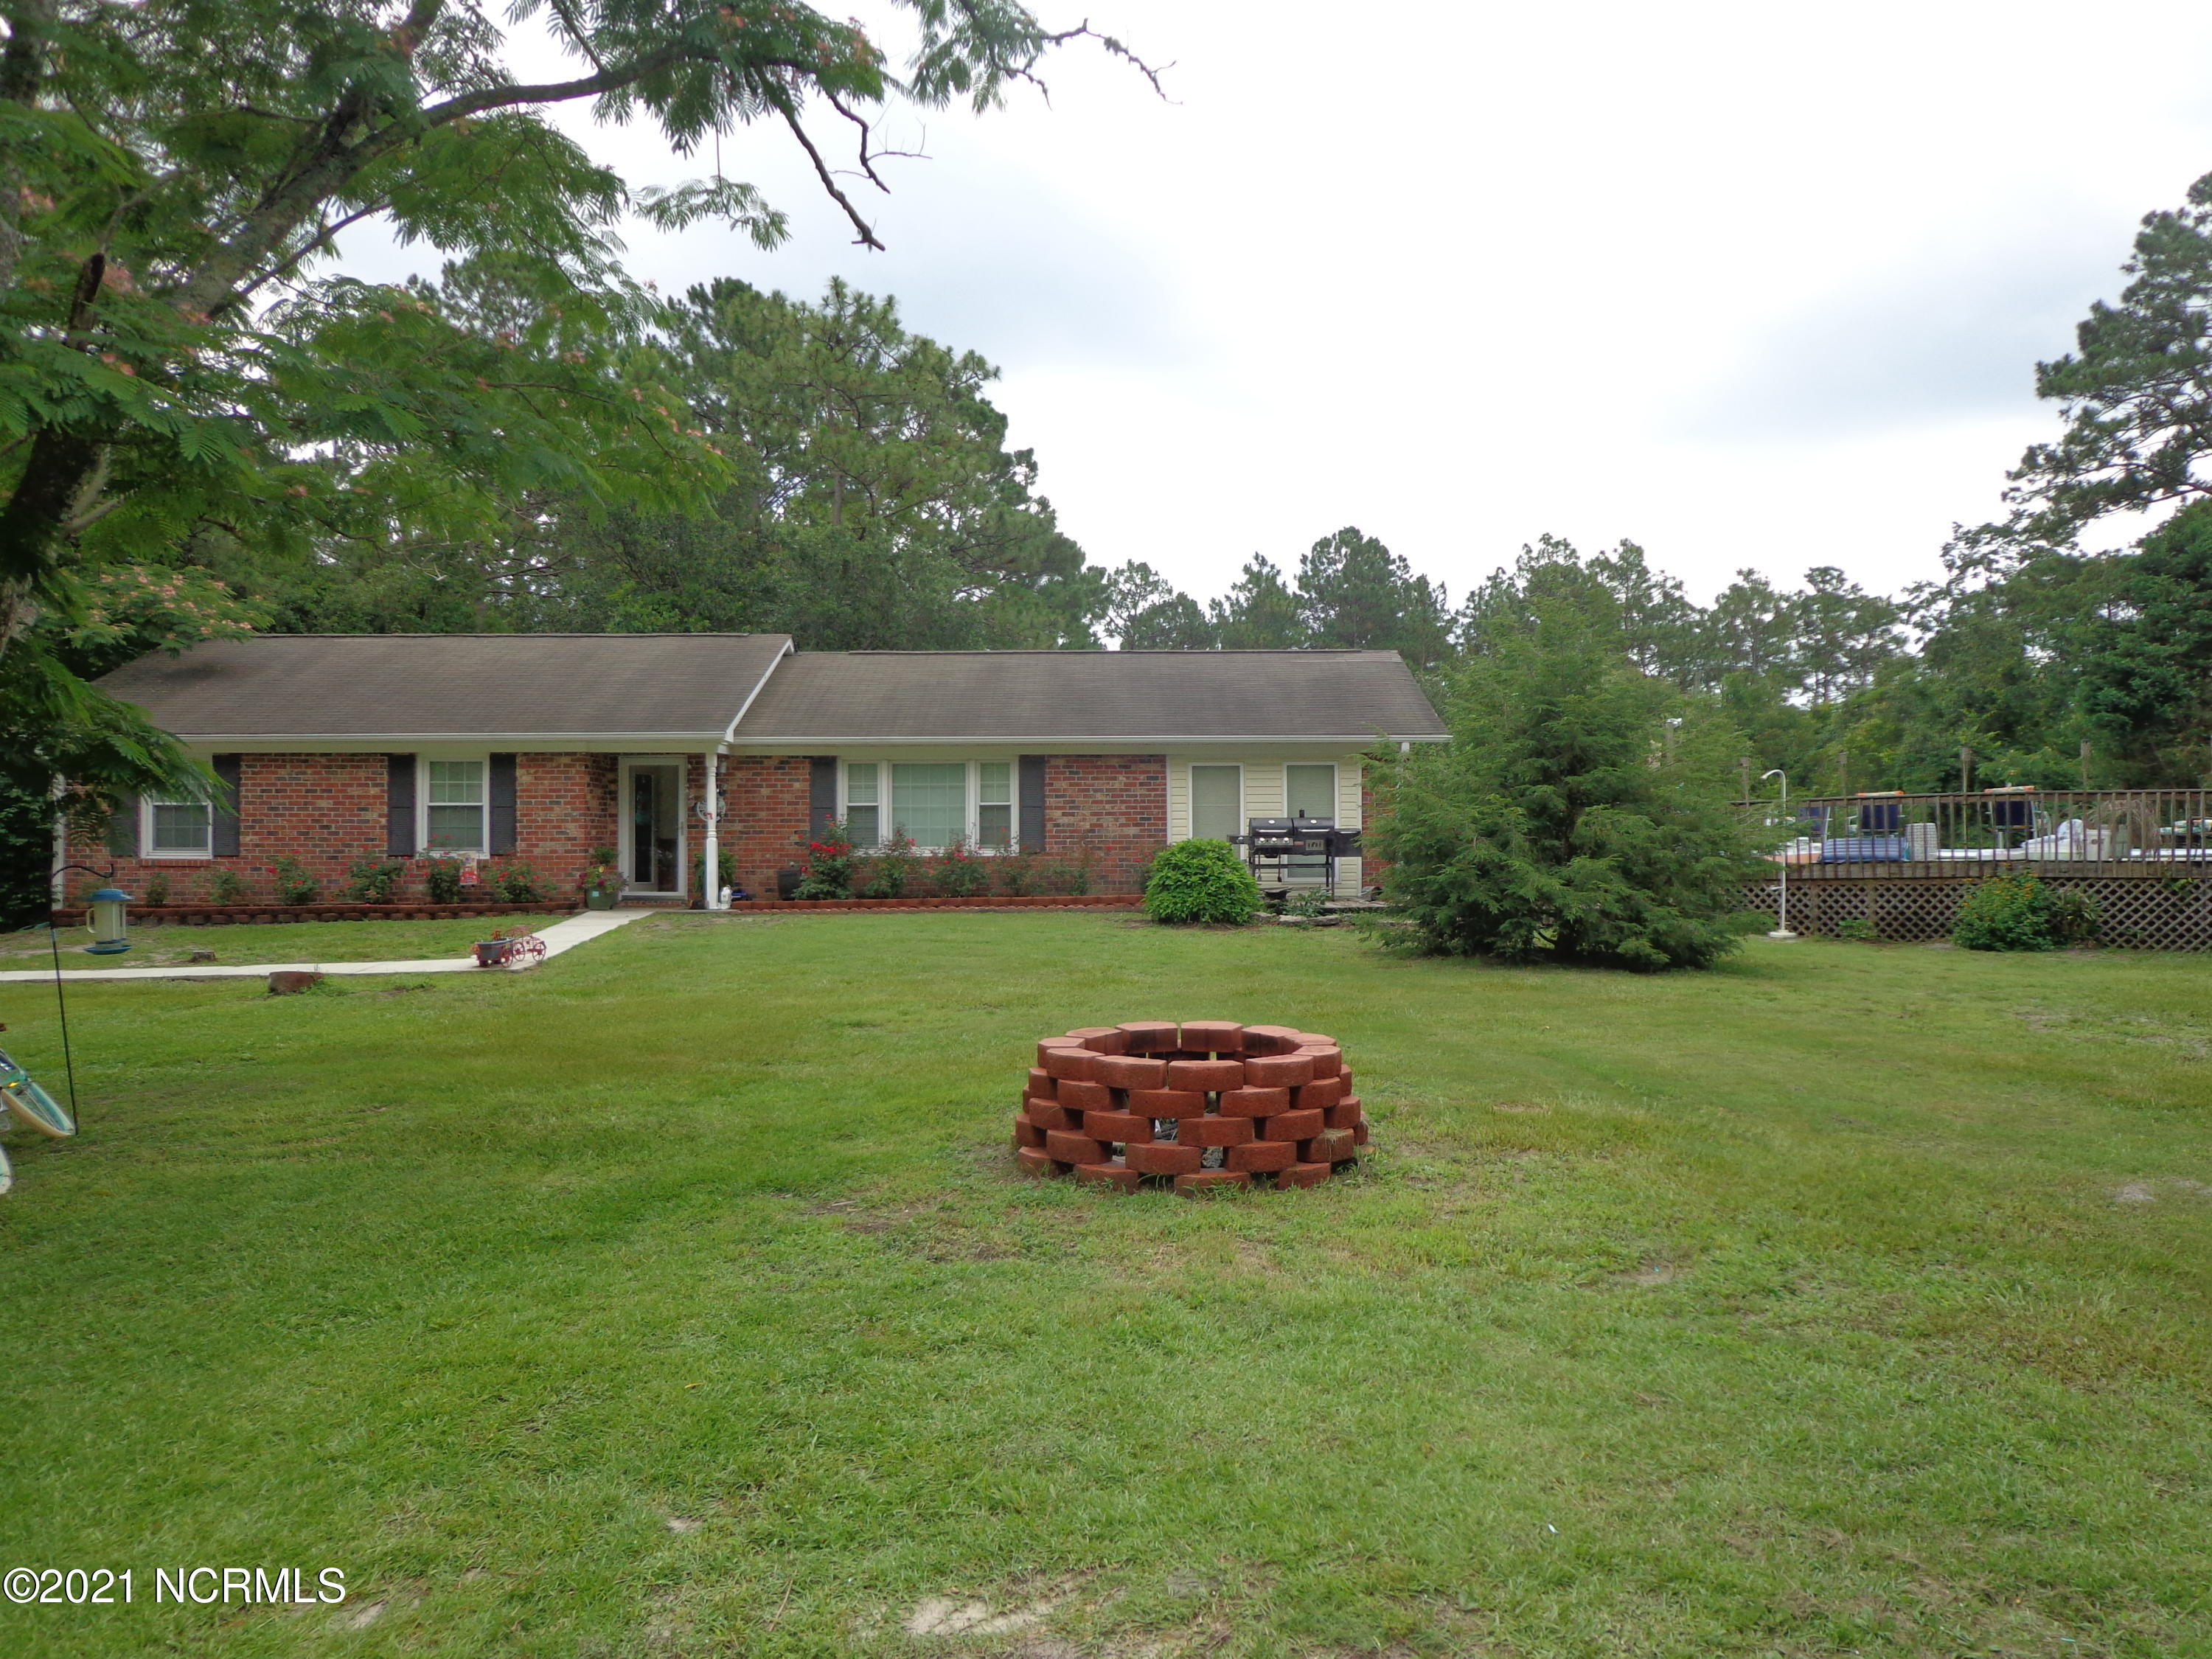 FOUR ACRES! Brick home is on a 1 acre parcel and has 3 bedrooms, 2 baths, office or another bedroom. Also, an above-ground swimming pool. Well built home has 1,612 square feet. Adjoining this property is a 3 acre parcel. The address of this 3 acre parcel is 314 Electric Lane. On the first acre is an older 14x65 mobile home with 3 bedrooms and 1 bath and rents for $700 a month. There is a 20' easement on the left side of the 3 acre parcel to allow access to the brick home. Owner desires to sell these 2 parcels as a package and does not want to sell one or the other. Both the brick home and mobile home are being sold in ''AS IS'' condition.       Nice property  --  Call Today!!!!